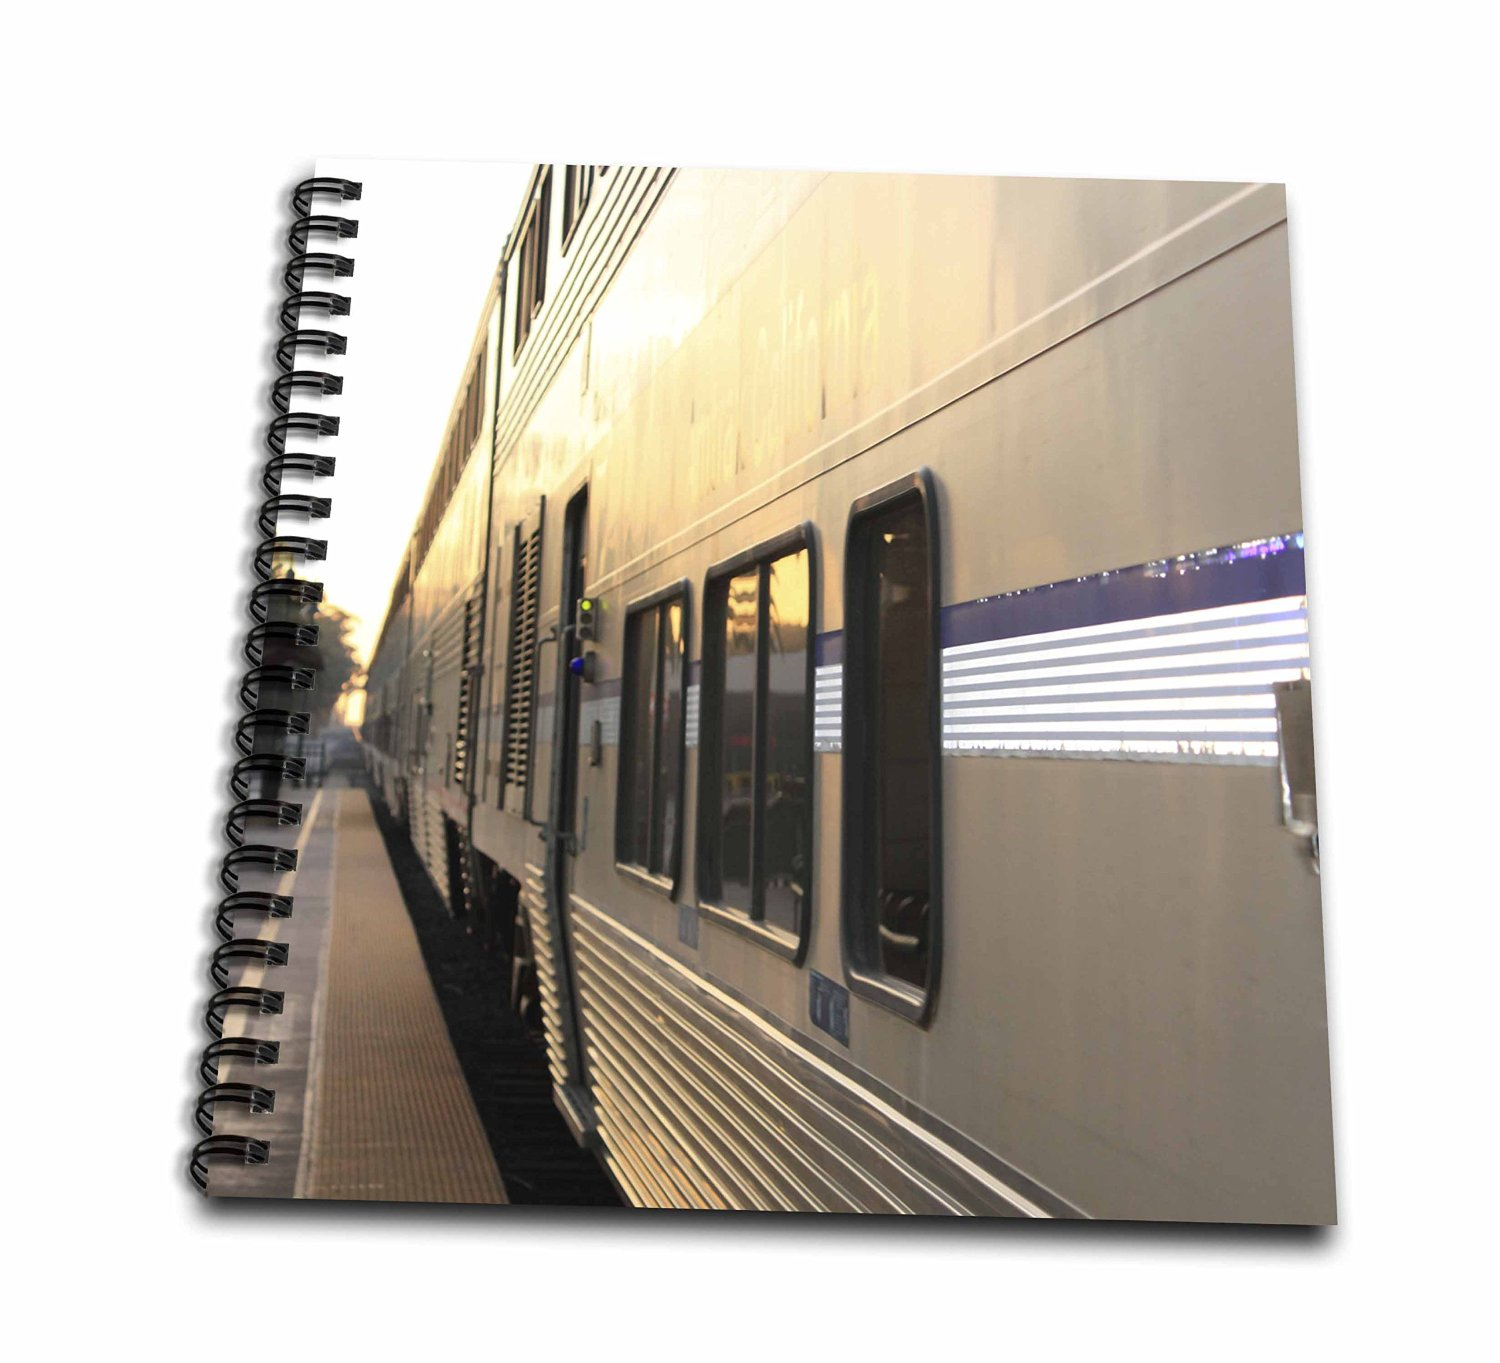 Henrik Lehnerer Designs - Transportation - Train Station in Ventura California with a view of a train. - Mini Notepad 4 x 4 inch (db_216201_3)